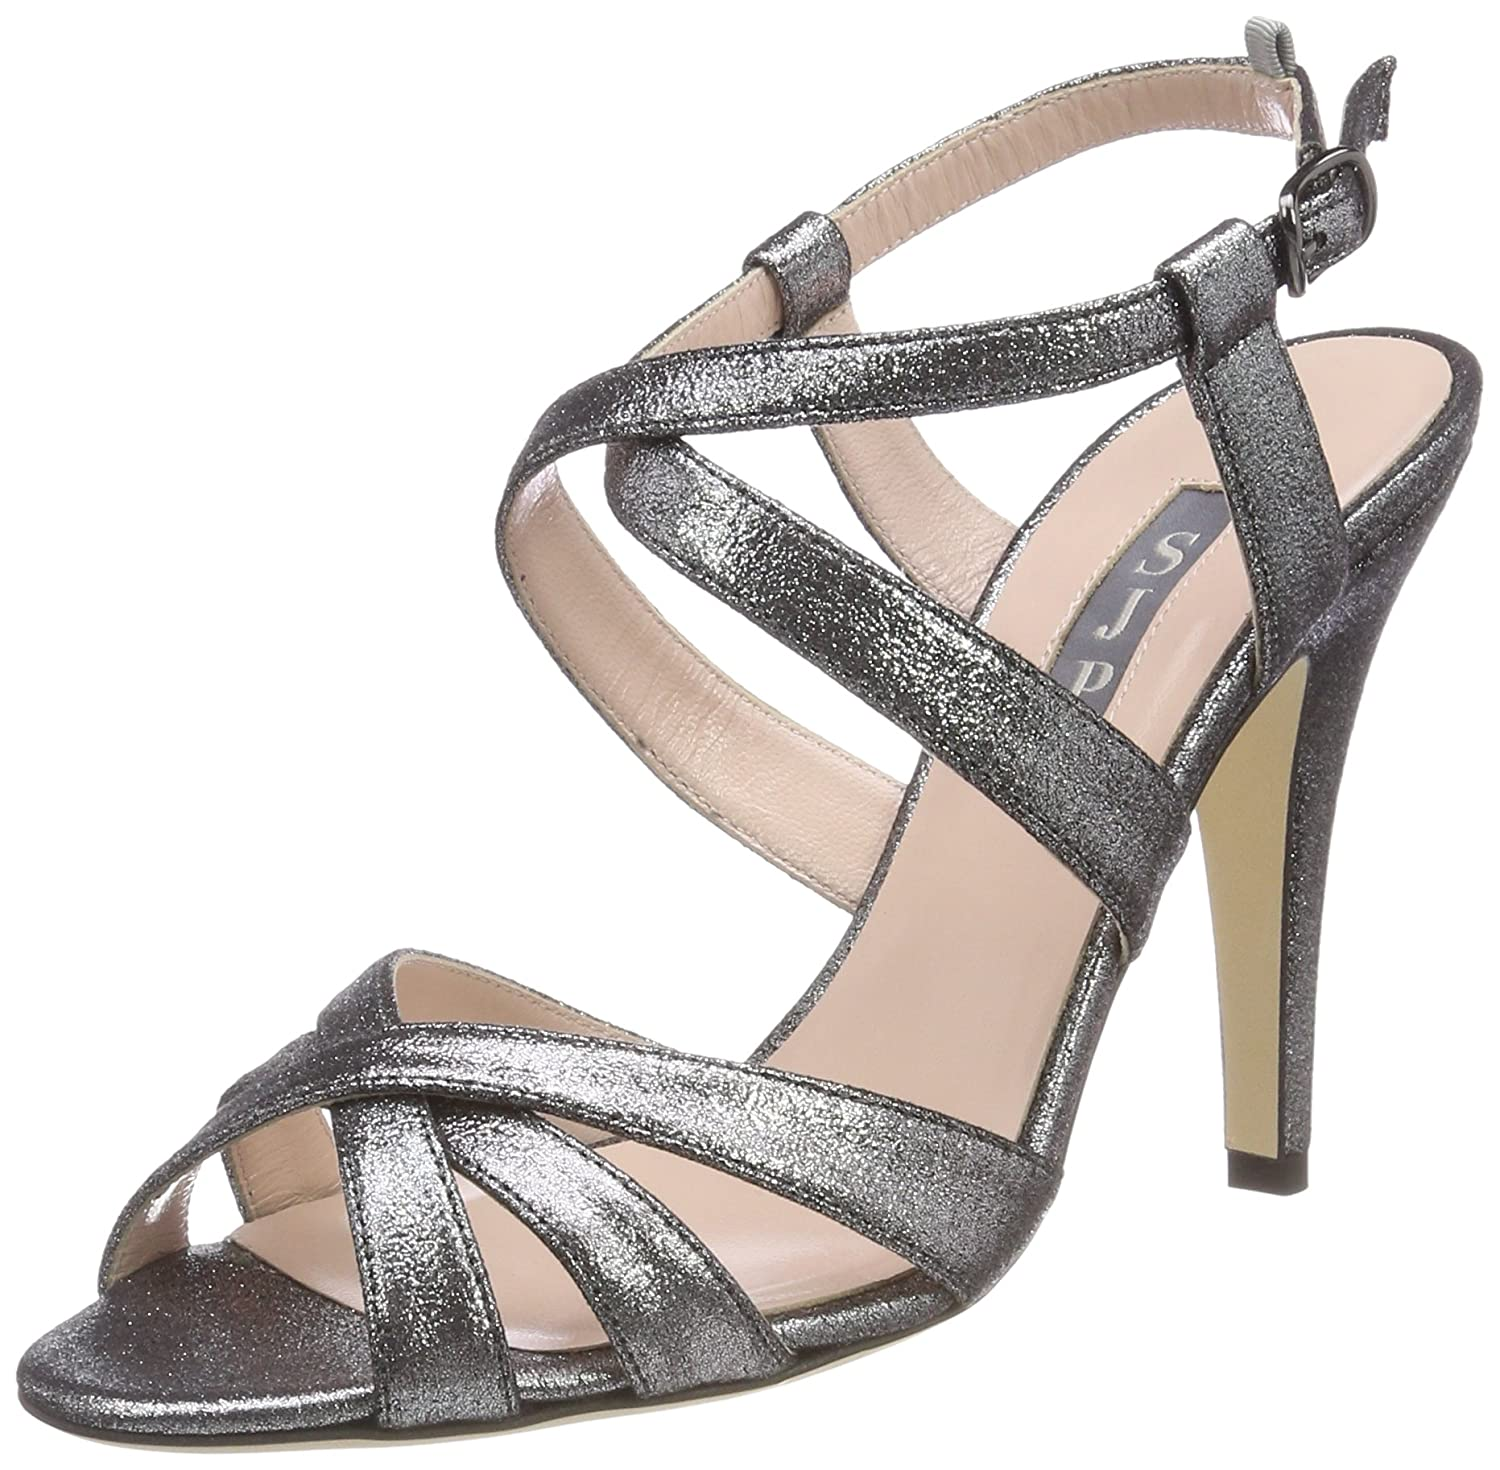 SJP Sandales by (Anthracite Sarah B07B3Y97WN Jessica Parker Teegan, Sandales Femme Gris (Anthracite Stardust) 59c44ad - therethere.space